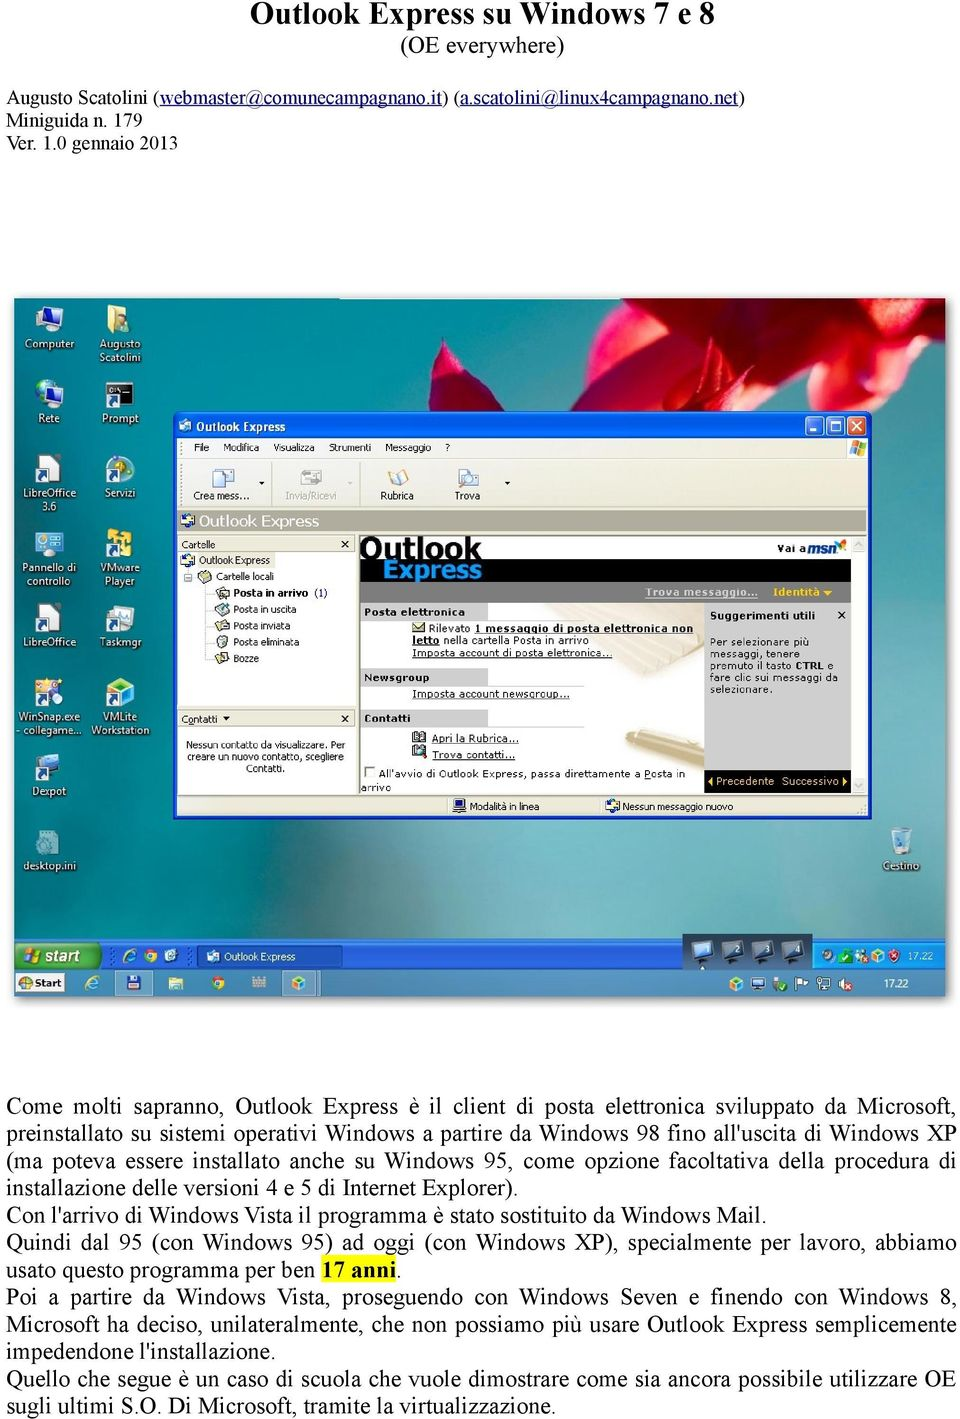 0 gennaio 2013 Come molti sapranno, Outlook Express è il client di posta elettronica sviluppato da Microsoft, preinstallato su sistemi operativi Windows a partire da Windows 98 fino all'uscita di